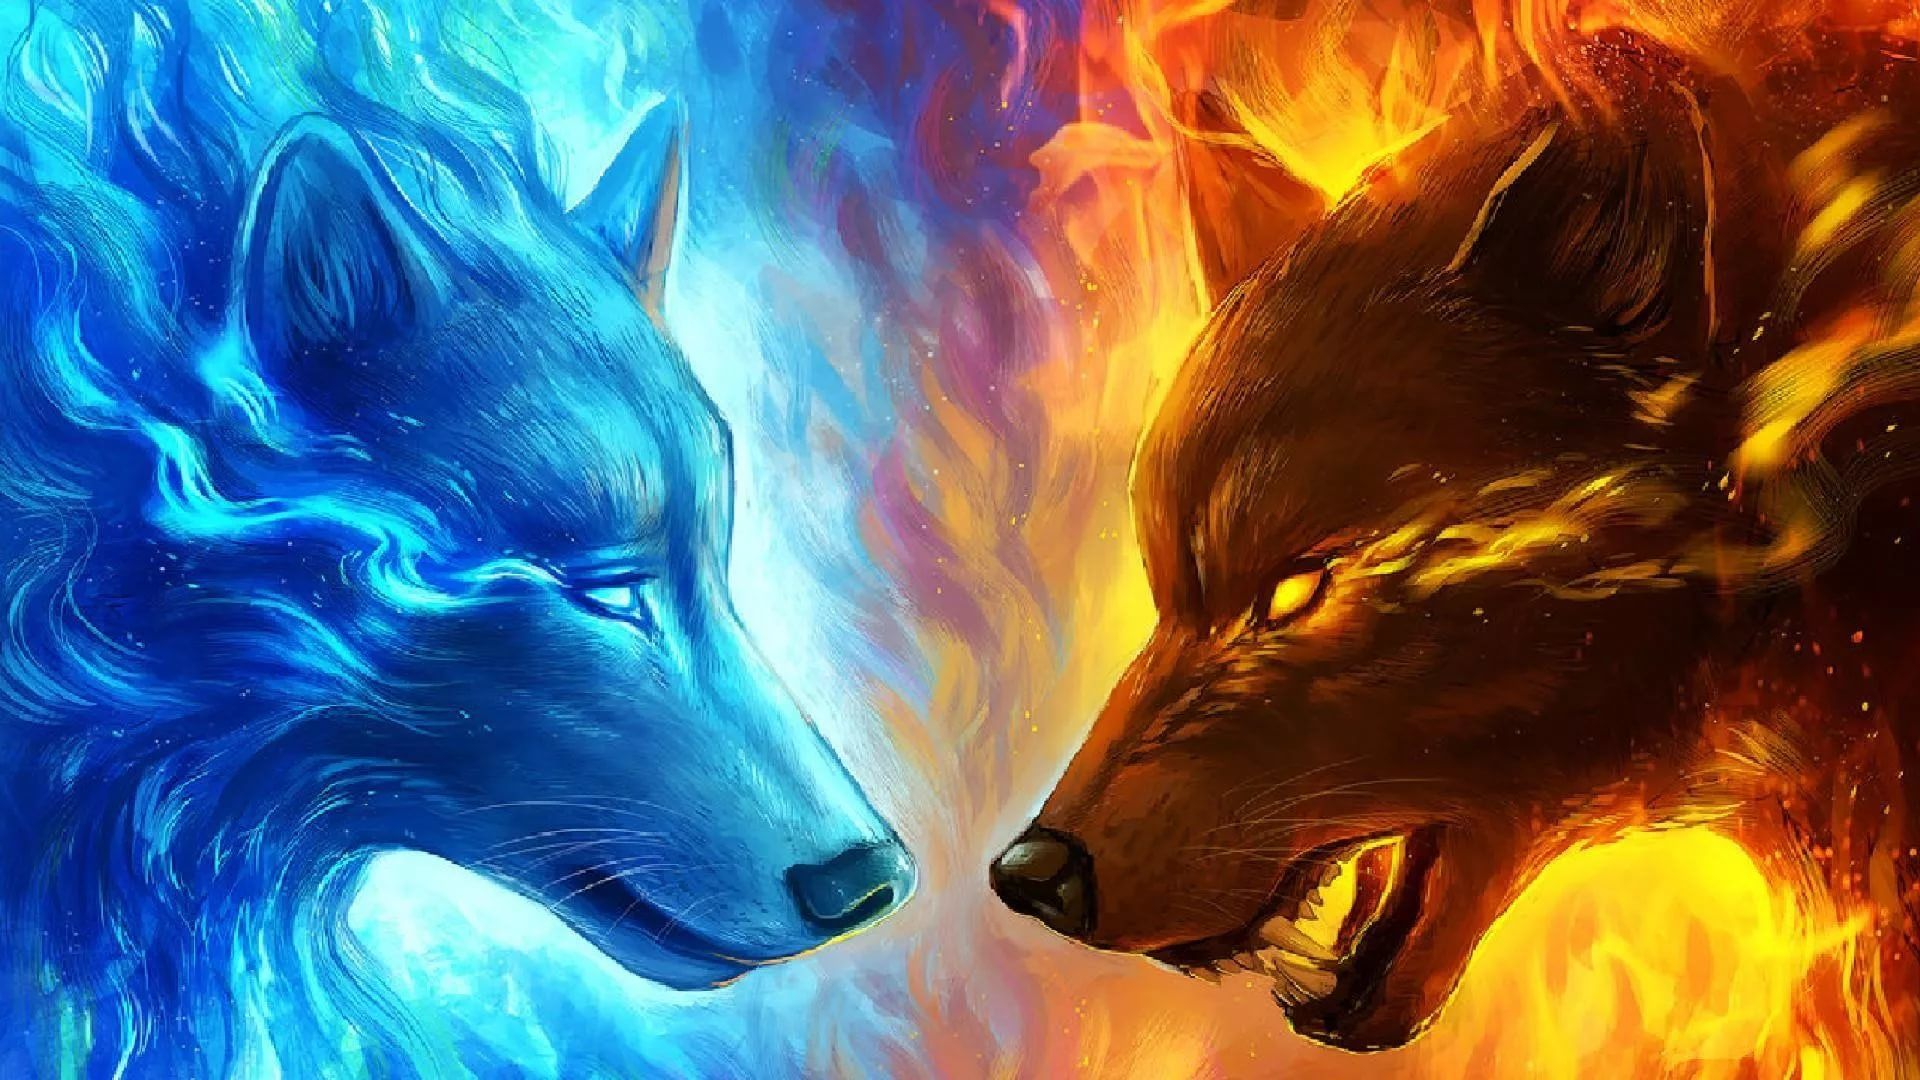 Cool Wolf download free wallpapers for pc in hd